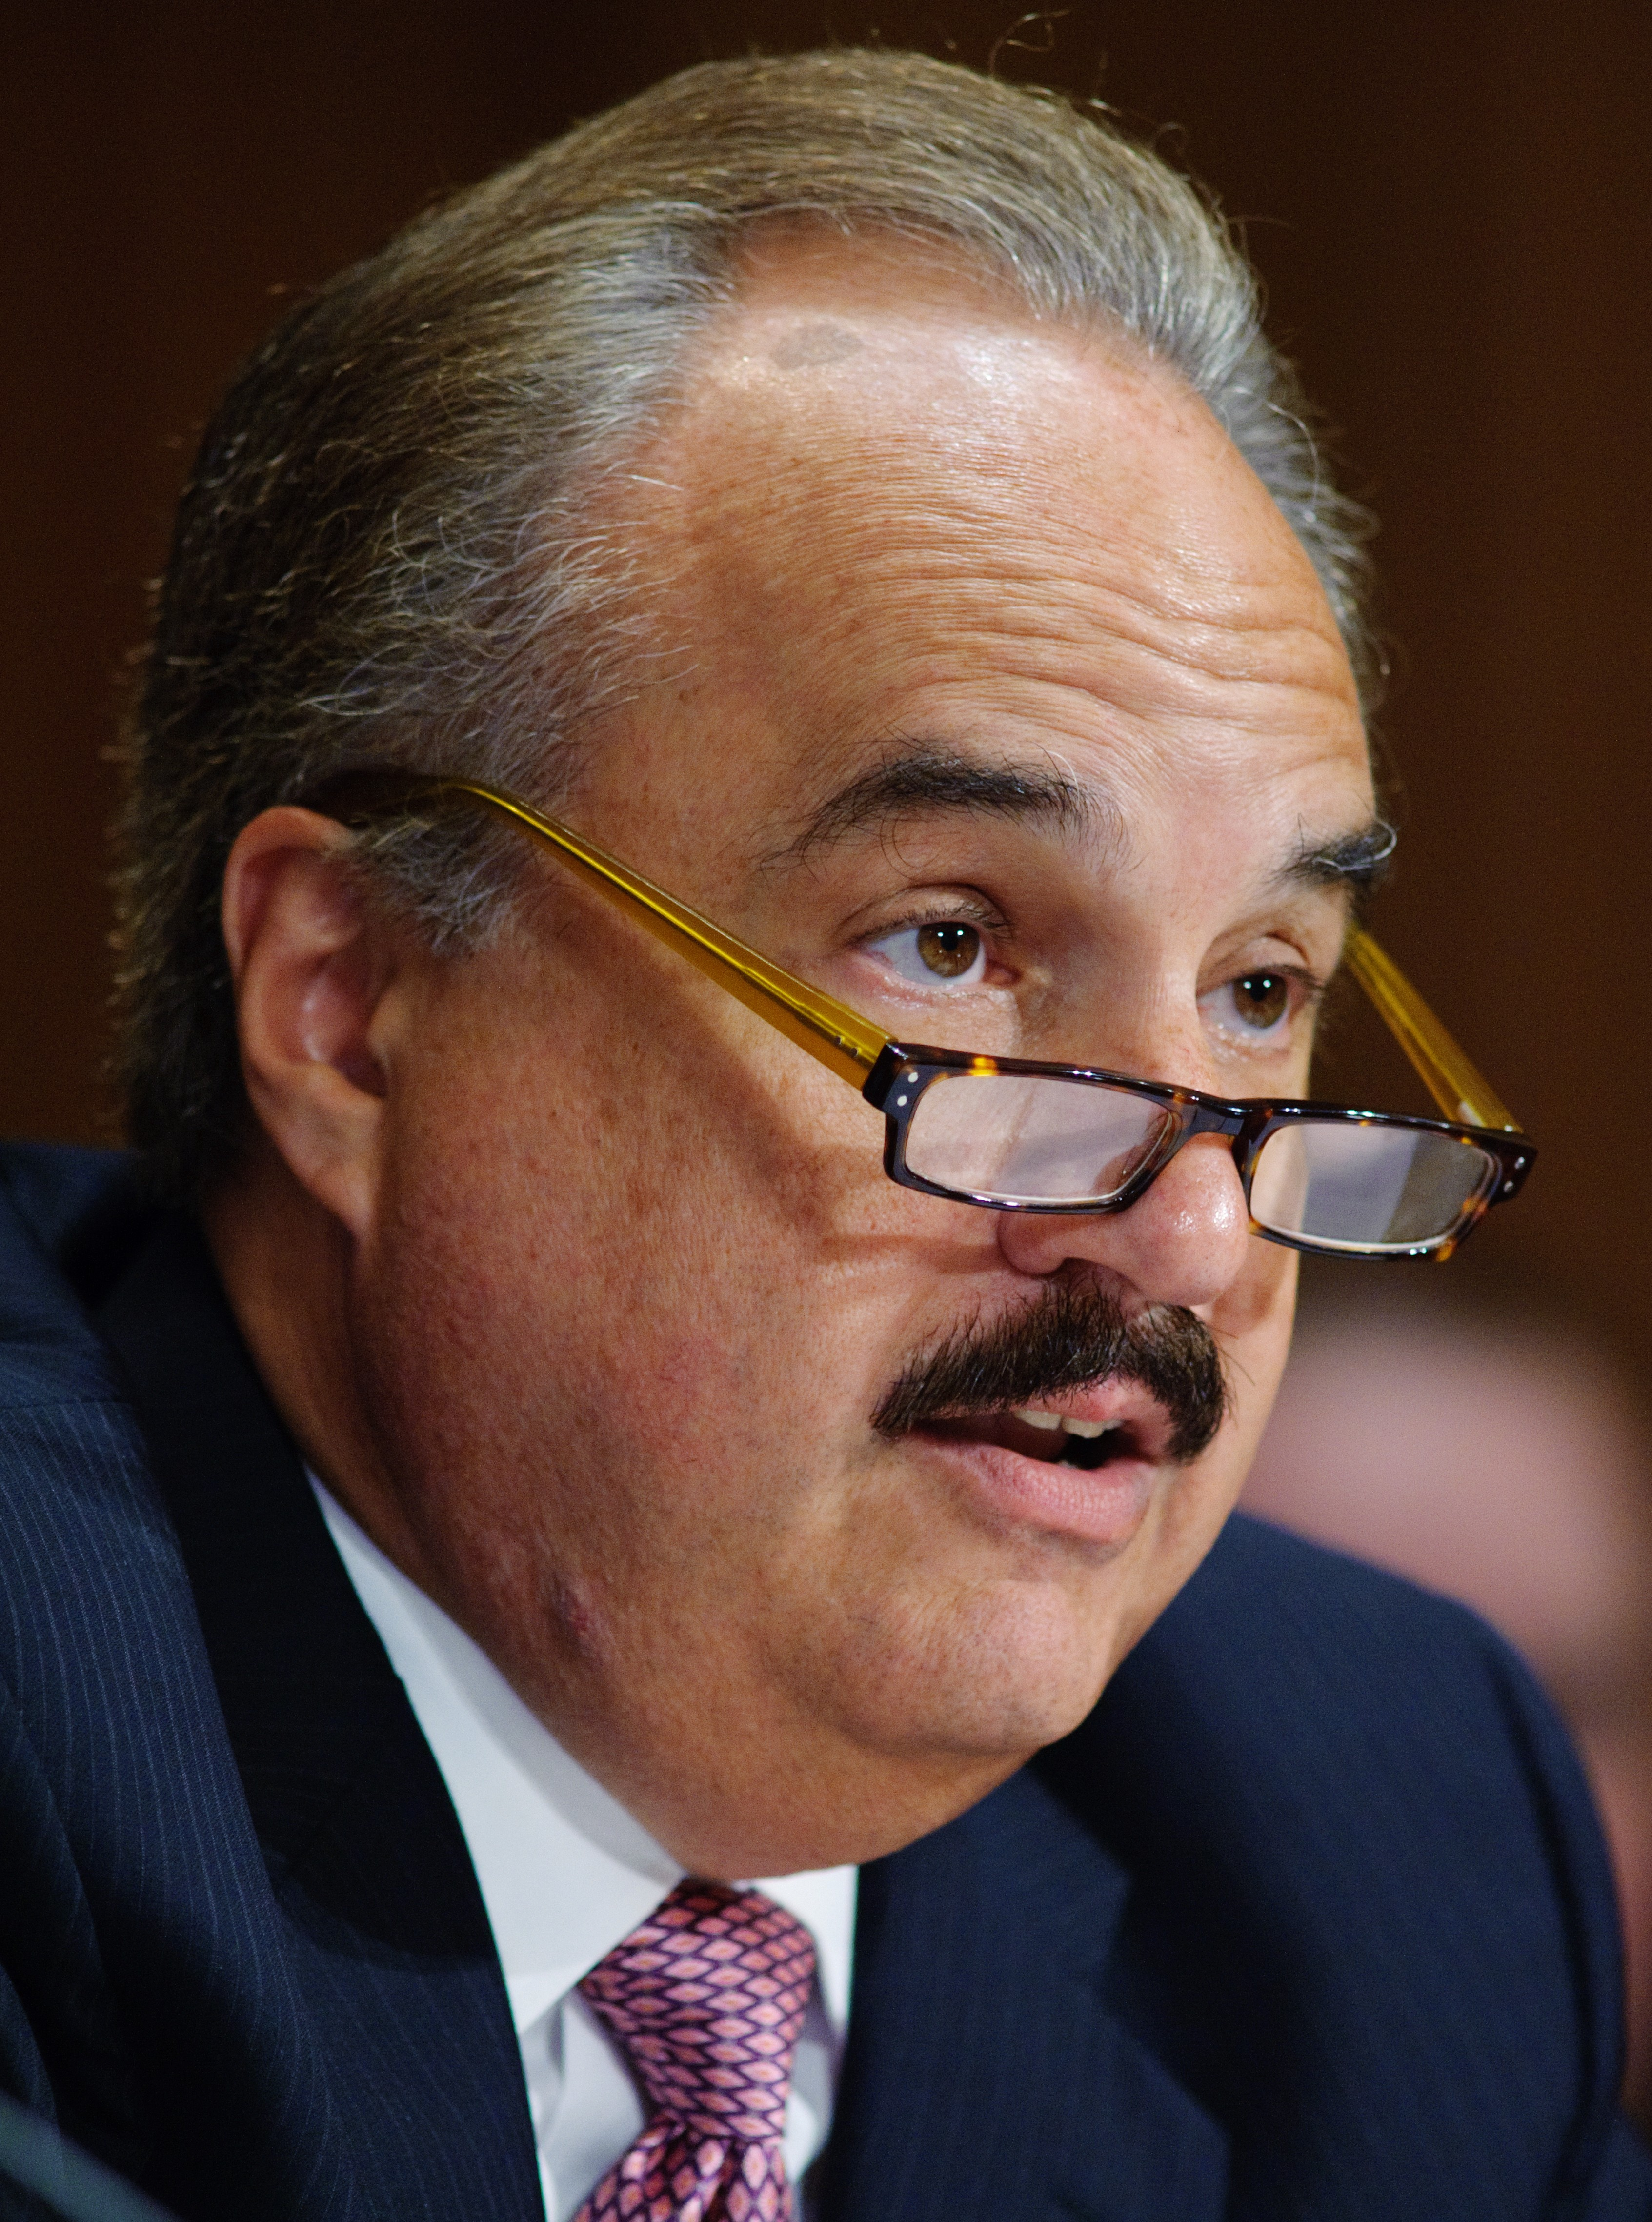 Larry Merlo, President and Chief Executive Officer, CVS Caremark Corporation, testifies before the Senate Finance Committee on the affect of the tax code on hiring, businesses and economic growth July 27, 2011 at the Dirksen Senate Office Building on Capitol Hill in Washington, DC. (MANDEL NGAN/AFP/Getty Images)